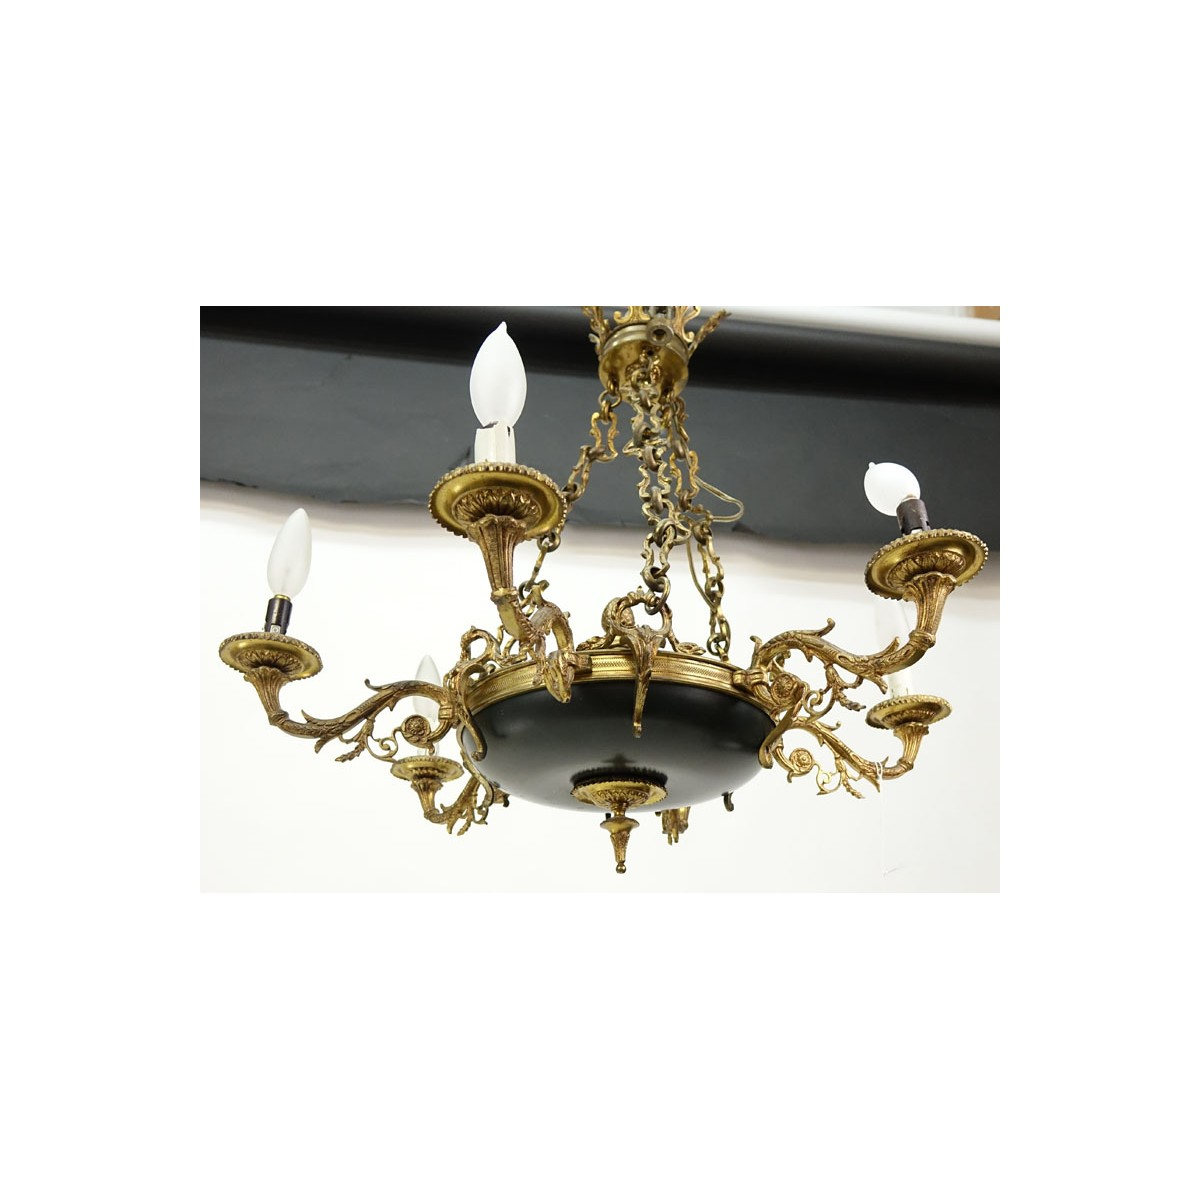 19/20th Century Empire Style Six-Light Gilt Brass and Tole Chandelier.  Rubbing to gilt, losses to